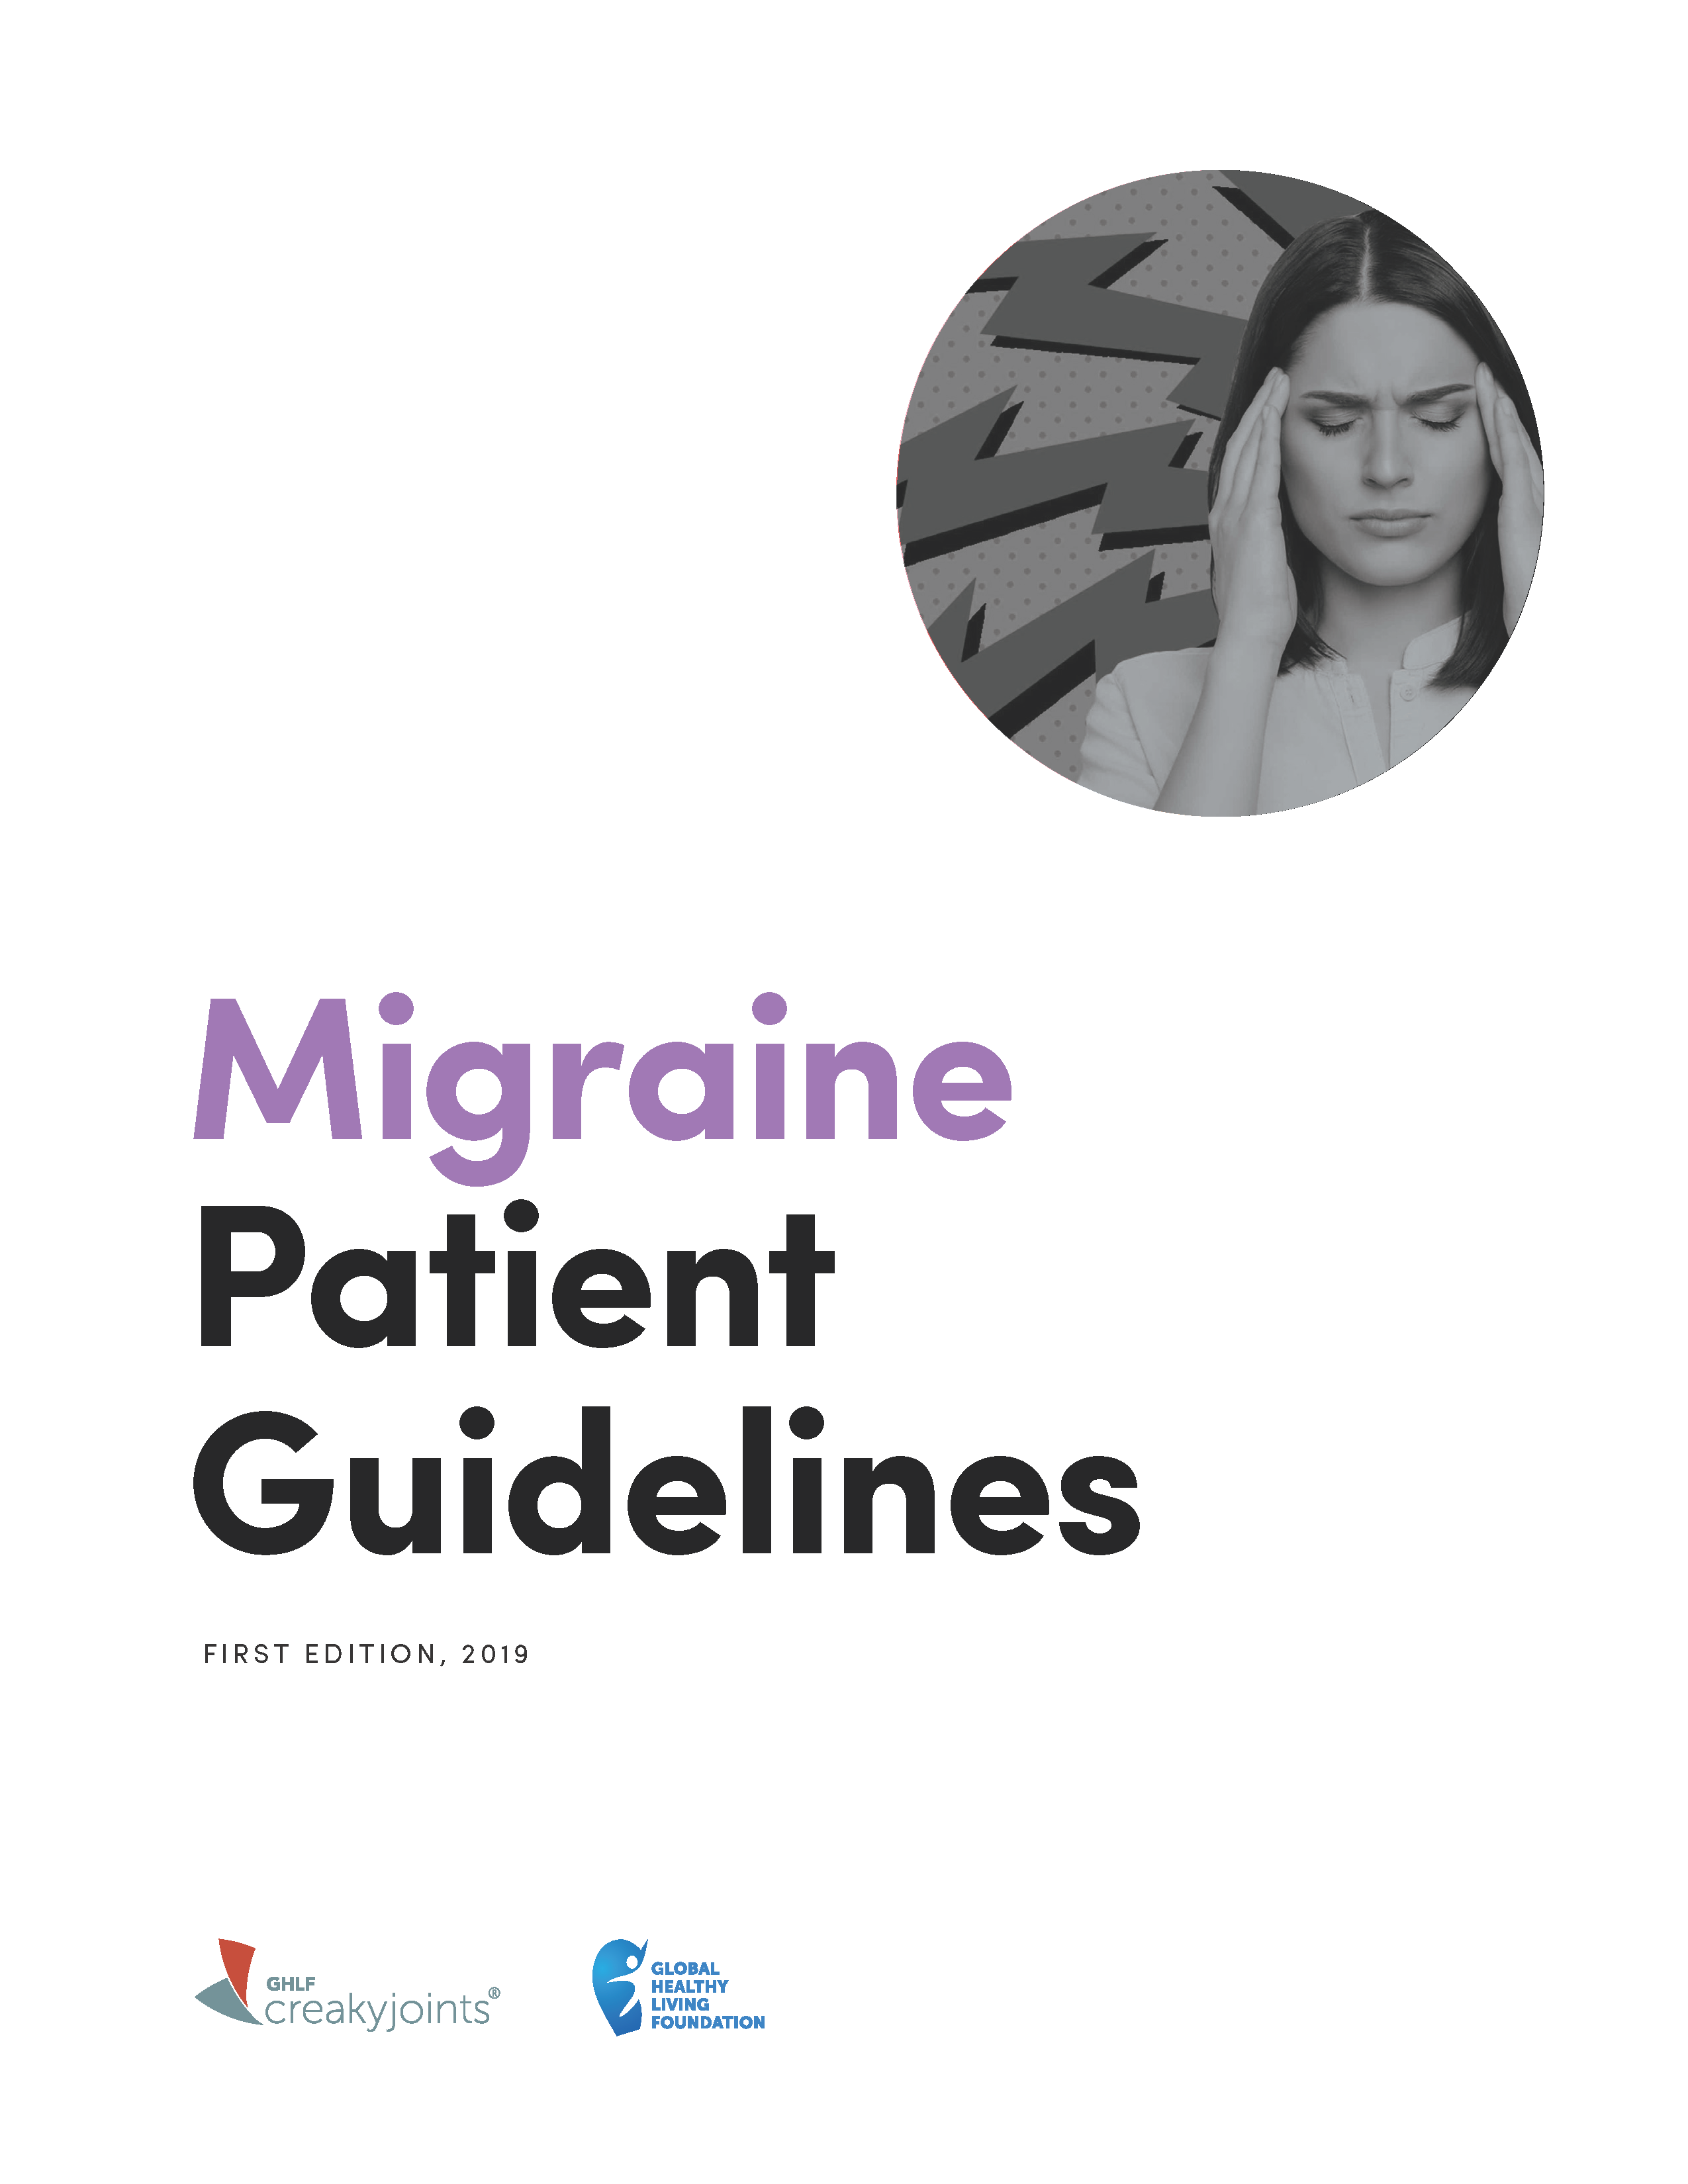 Migraine Patient Guidelines First Edition 2019 graphic